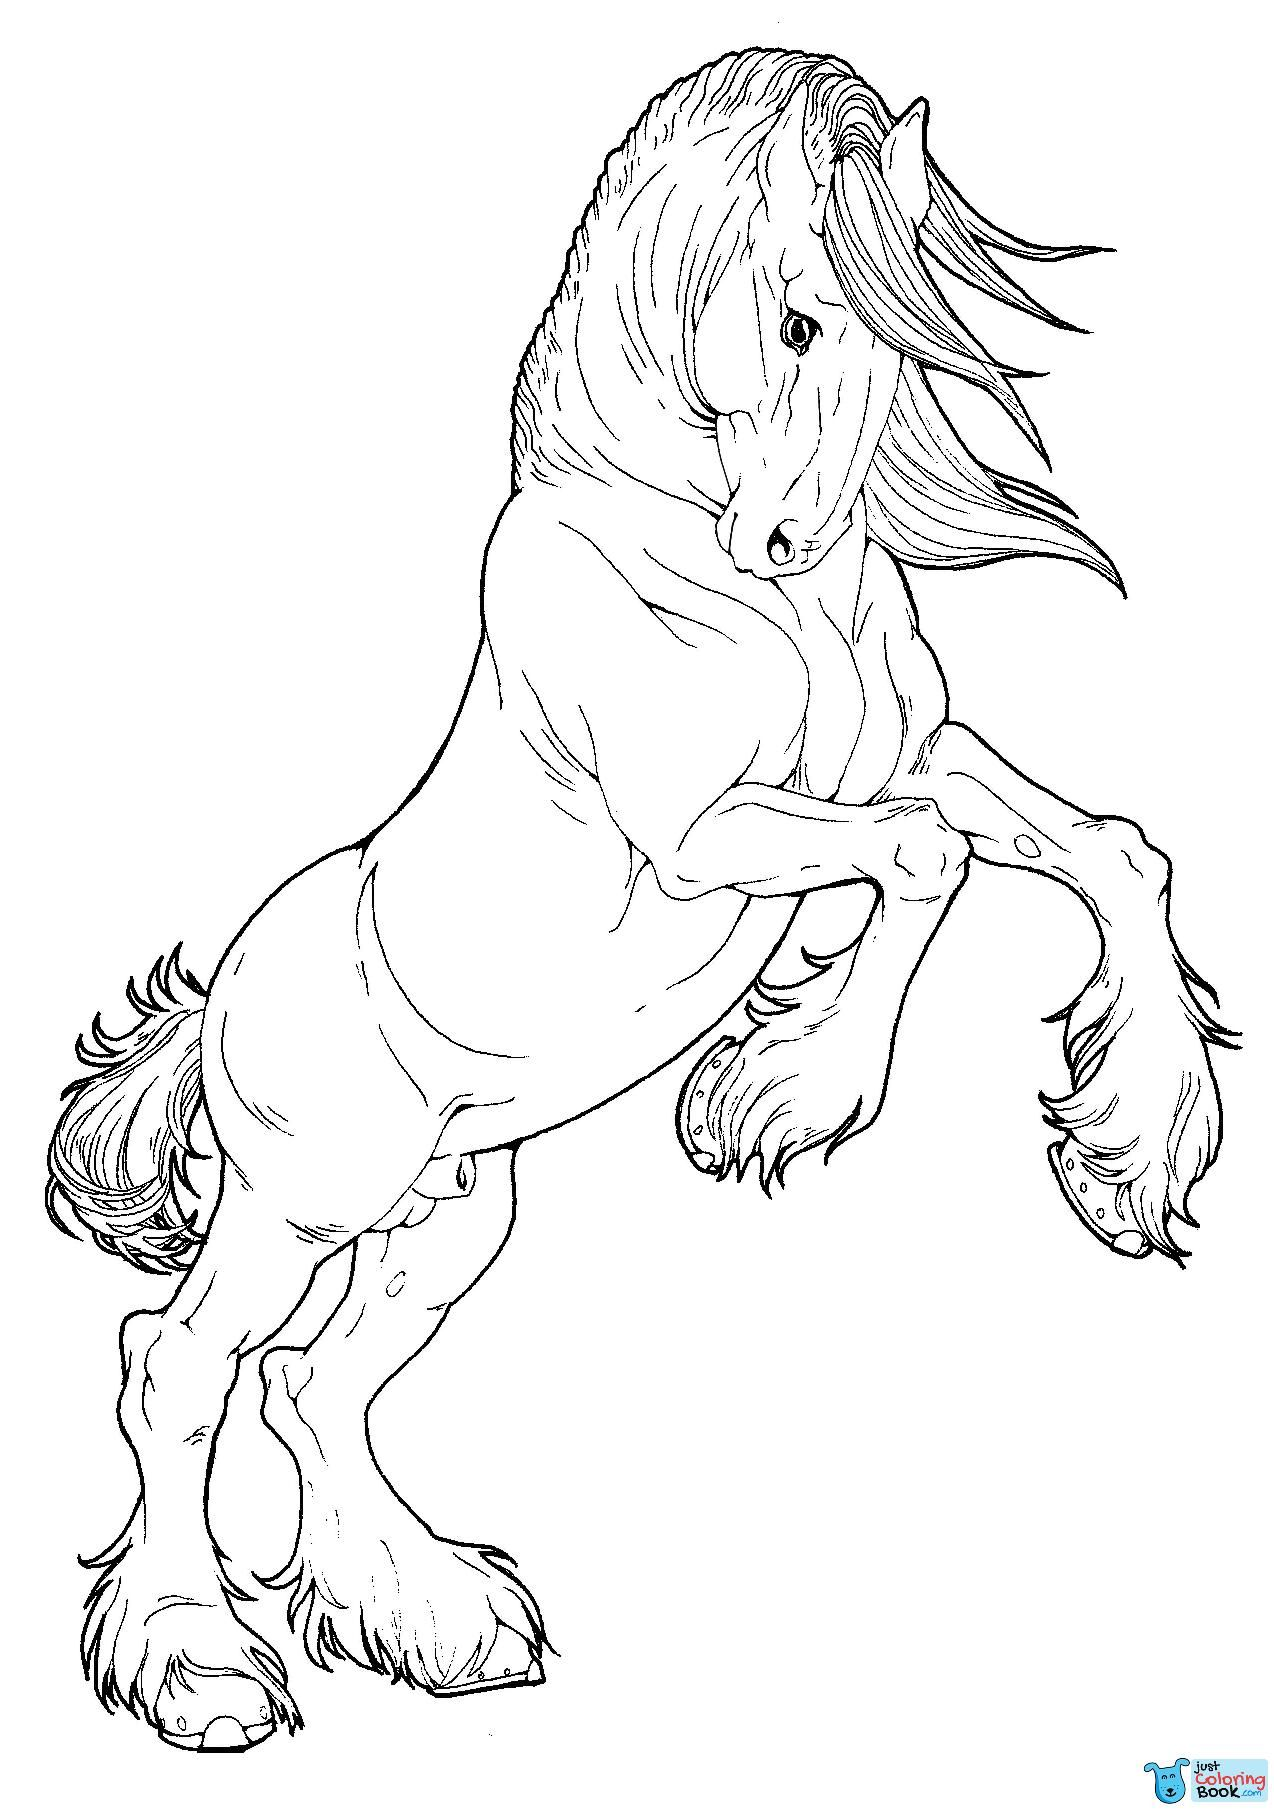 Draft Horse Sketch This Would Be An Awesome Tatt Kolorowanki With Welsh Cob Coloring Pages Horse Coloring Pages Horse Drawings Horse Coloring [ 1811 x 1274 Pixel ]